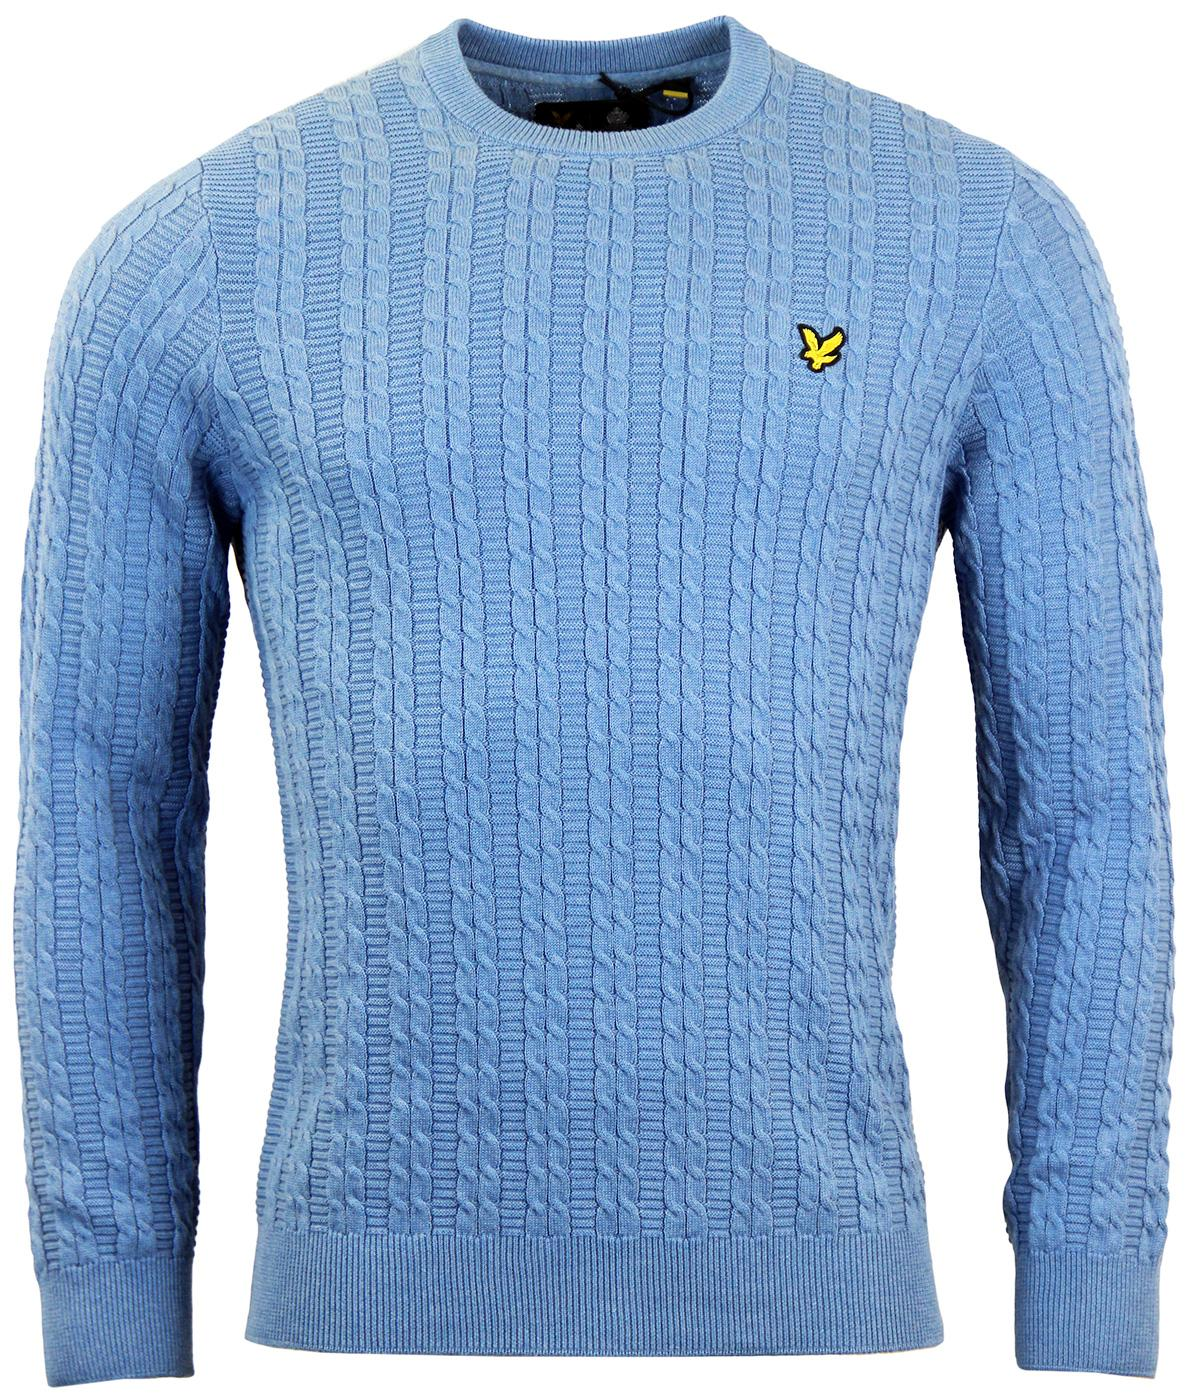 LYLE & SCOTT Retro Mod Cable Knit Ribbed Jumper